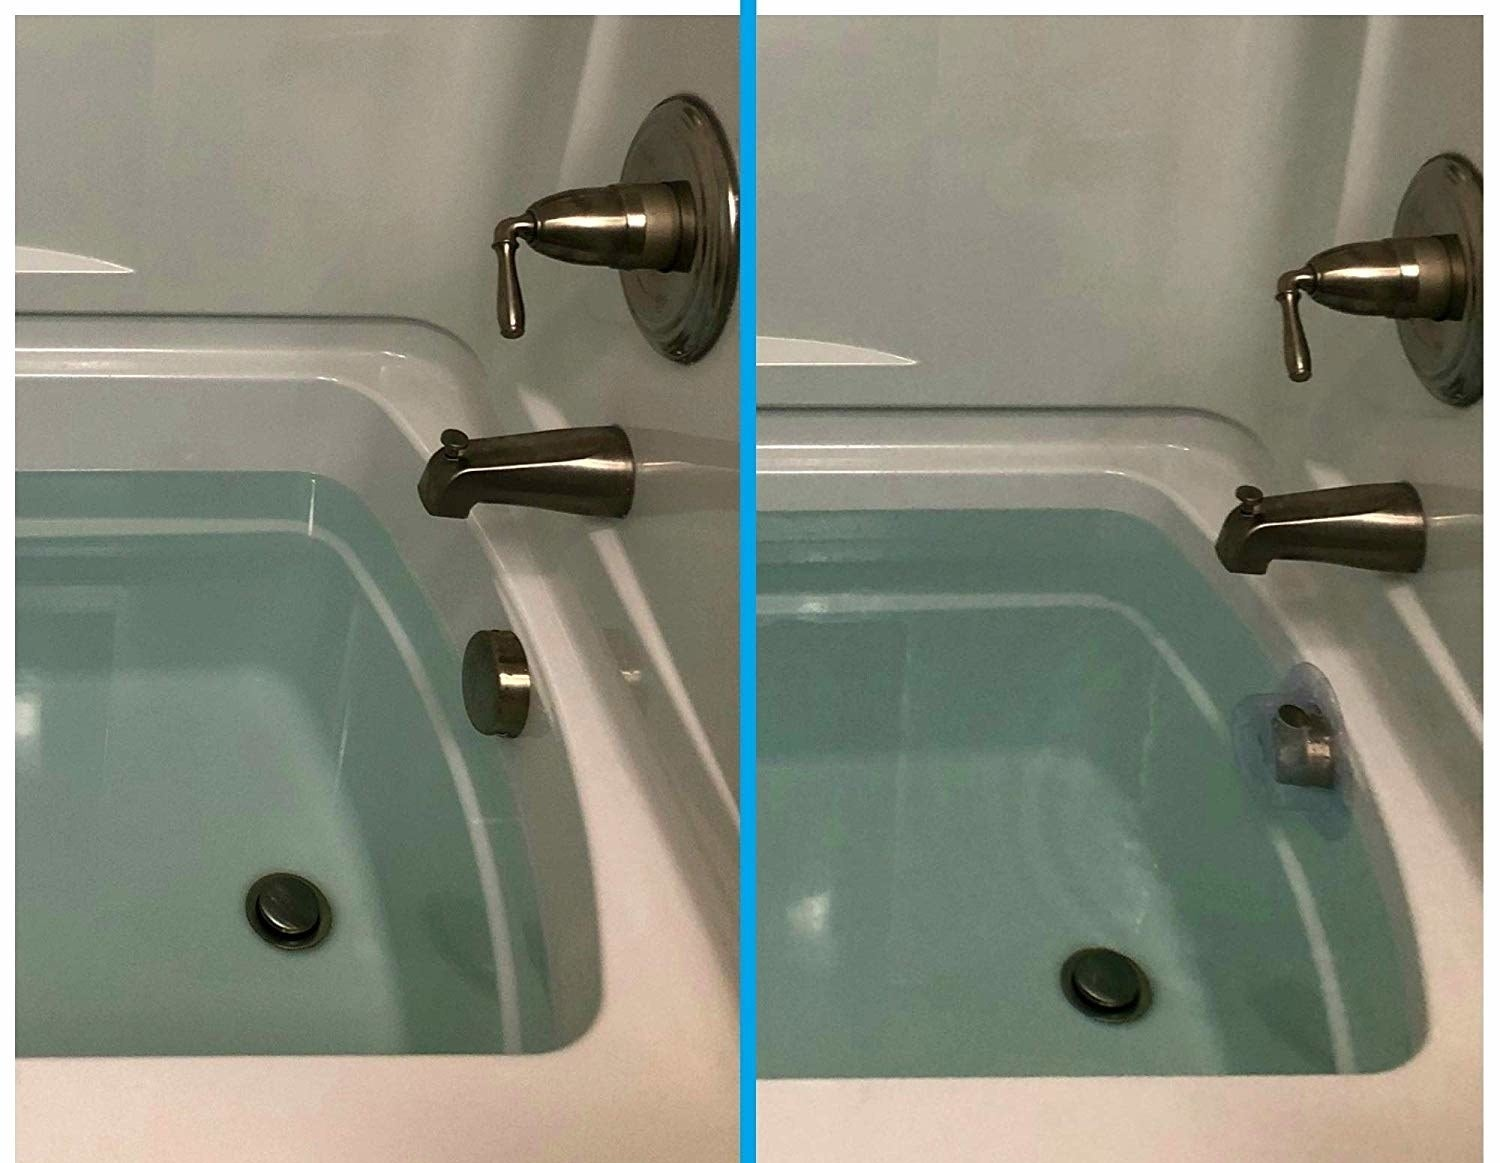 A before and after of a bathtub filled as far as it can be filled without the cover and then with the cover which is about 3-4 inches higher